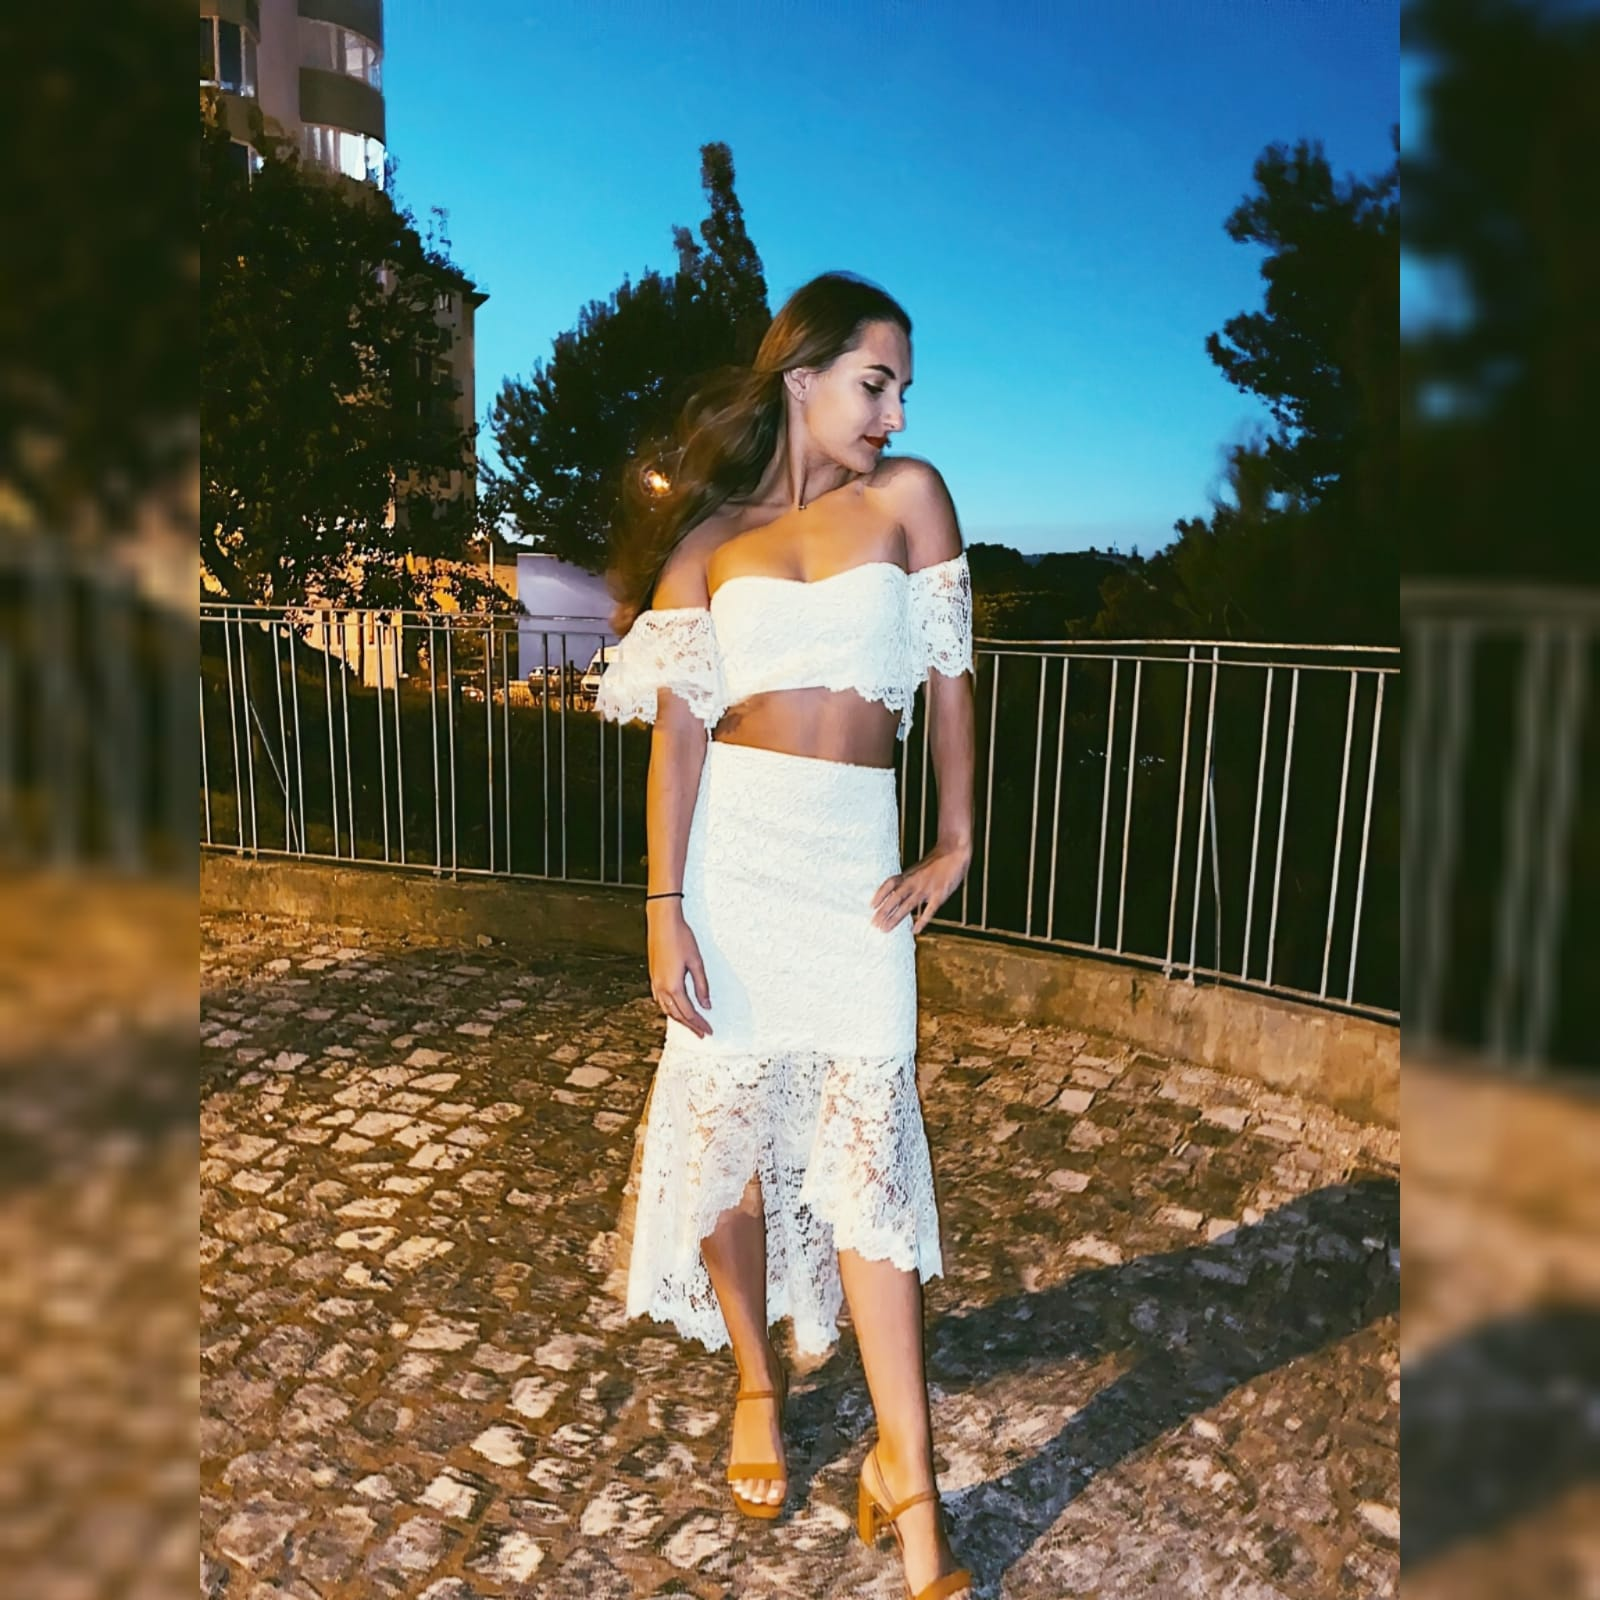 "💃 fun white lace 2 piece outfit 💃 1 <blockquote>""the most beautiful thing that a women can wear is her own confidence. ""</blockquote>this smart casual 2 piece dress was designed and made for my client's birthday dinner here in portugal lisbon 💃a fun white lace 2 piece outfit , with an off shoulder lace crop top and a hi - lo lace skirt. A versatile outfit as for example, the top can be worn several times with jeans, pants etc. #passion4fashion #mariselaveludo #2piecedress #croptop #whitelaceoutfit #lace #fashion #custommadedress #personalizeddress #smartcasualoutfit"